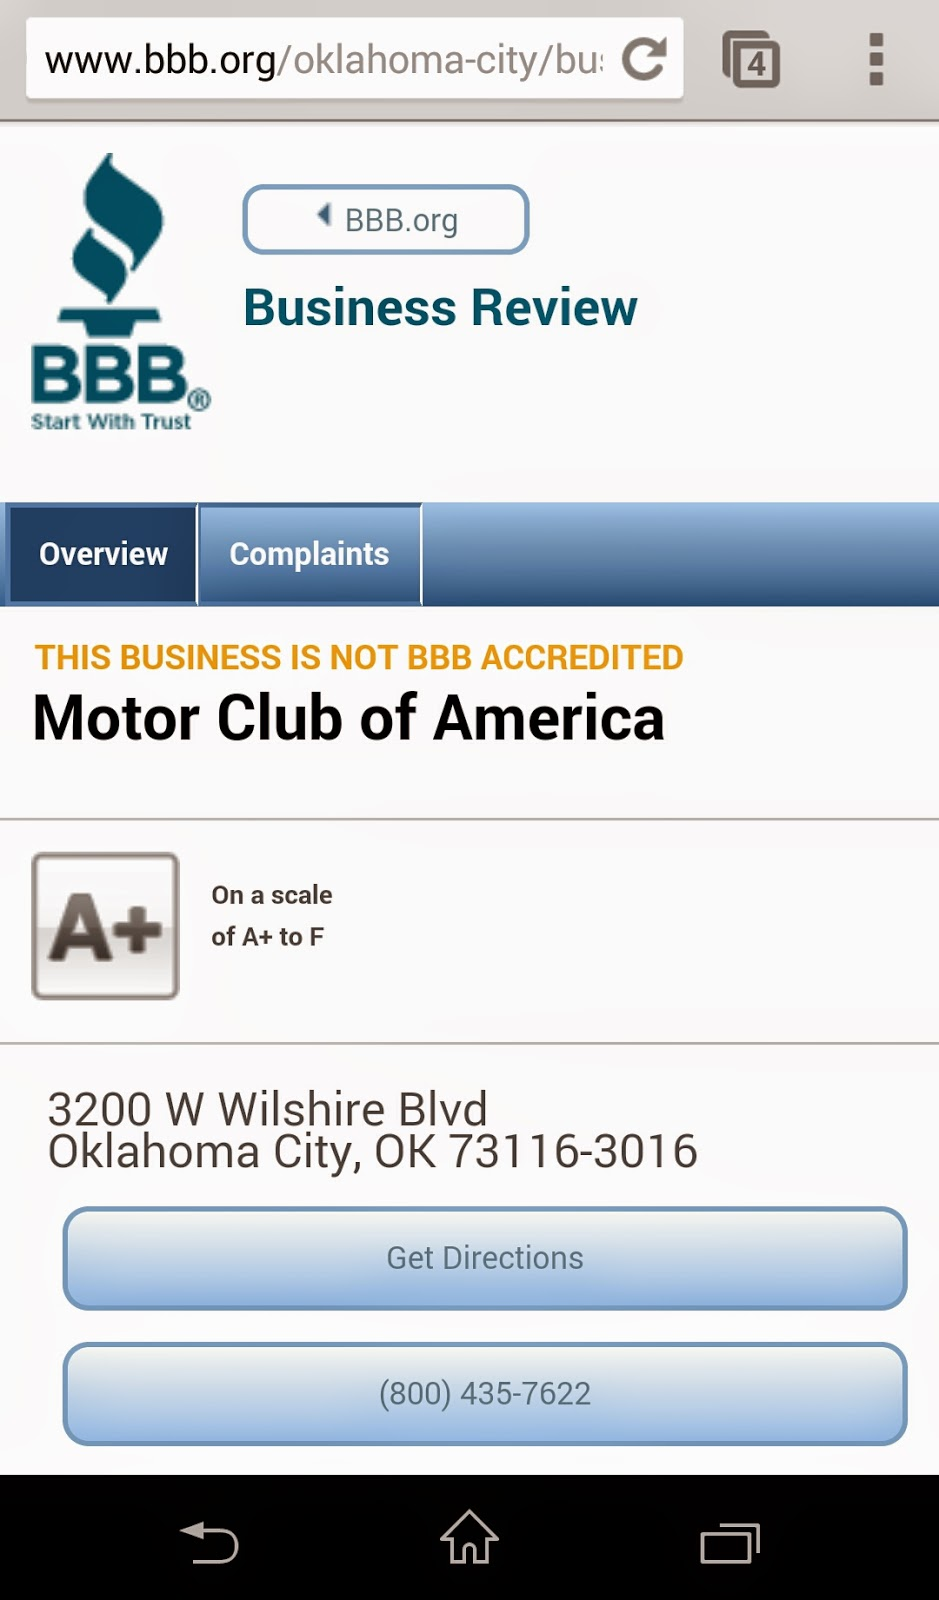 Motor club of america mca scam mca hidden agendas for Mca motor club of america scam